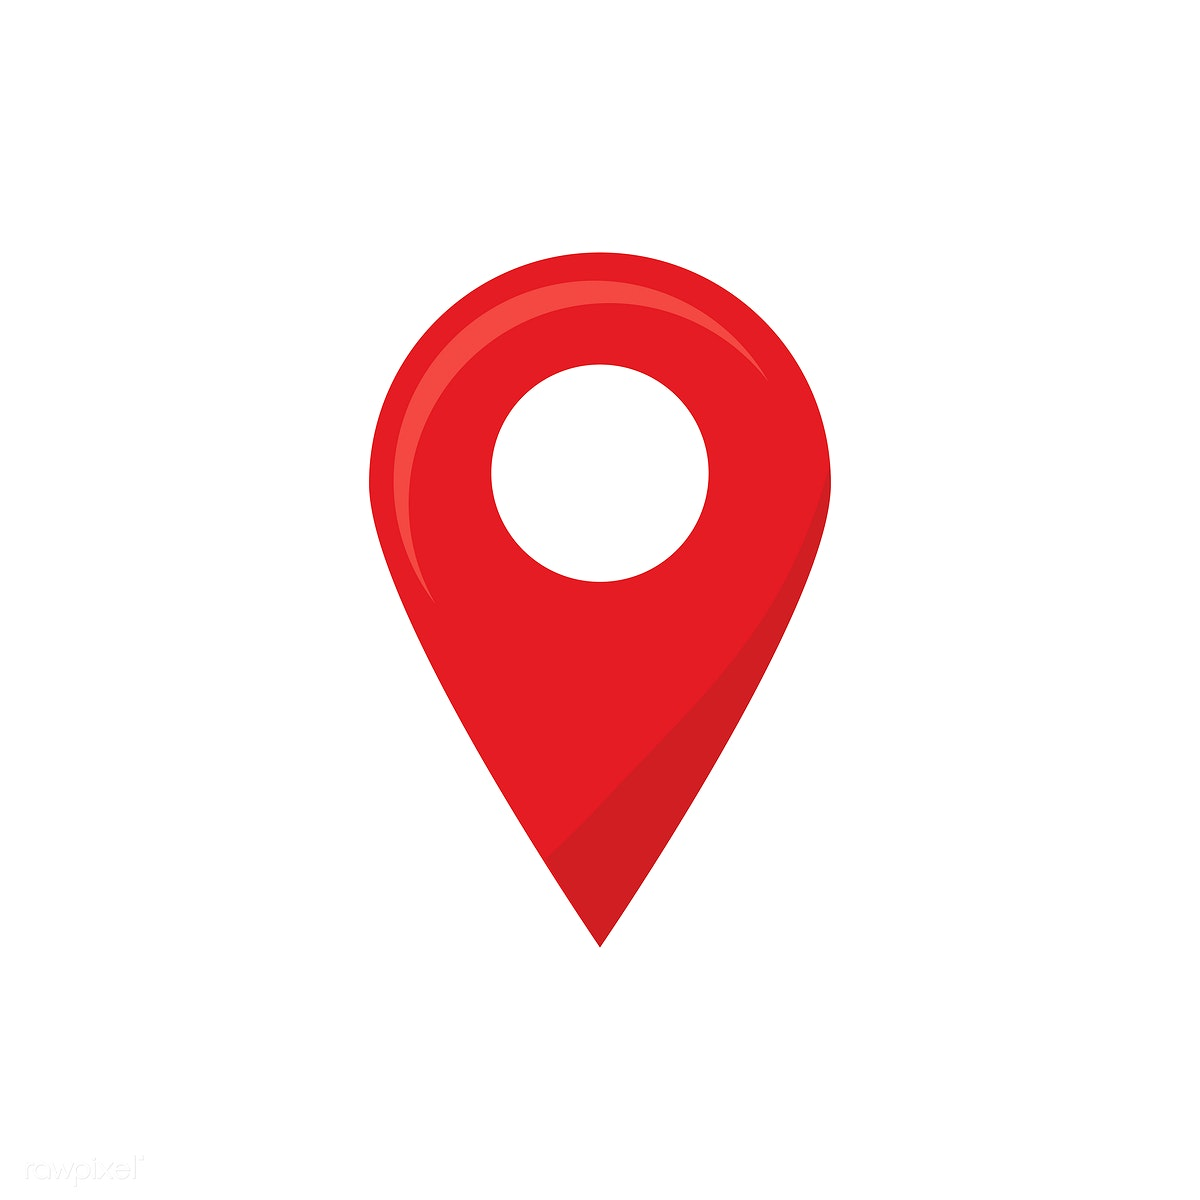 Illustration of map pin icon | Free stock illustration - 393706 on google maps walking icon, map center icon, map marker pin icon, google maps bus icon, google map icon police, google map icon symbols, flag map pin icon, google maps icon iphone, google map man icon, google scissors icon, google home icon, apple map pin icon, google trash icon, google map share icon, google map icon maker, google map address icon, green map marker icon, google map filter icon, google map icon green, google map flag icon,